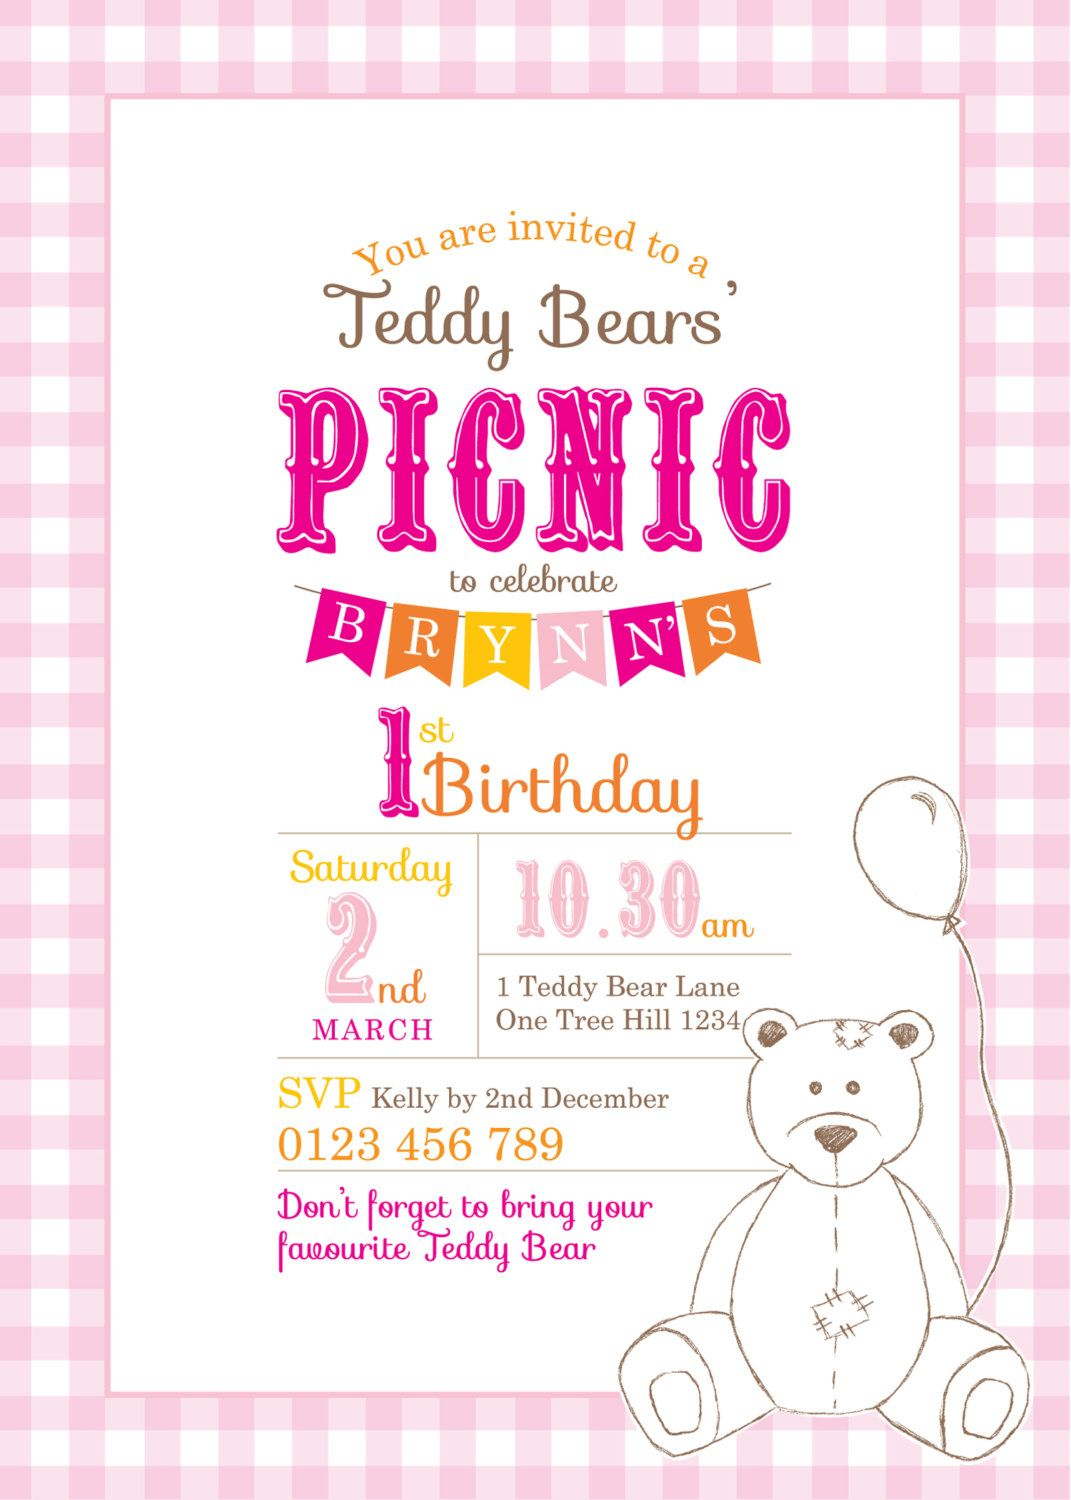 Printable Custom Birthday Party Invitation Template   Teddy Bears Picnic  Invites Template